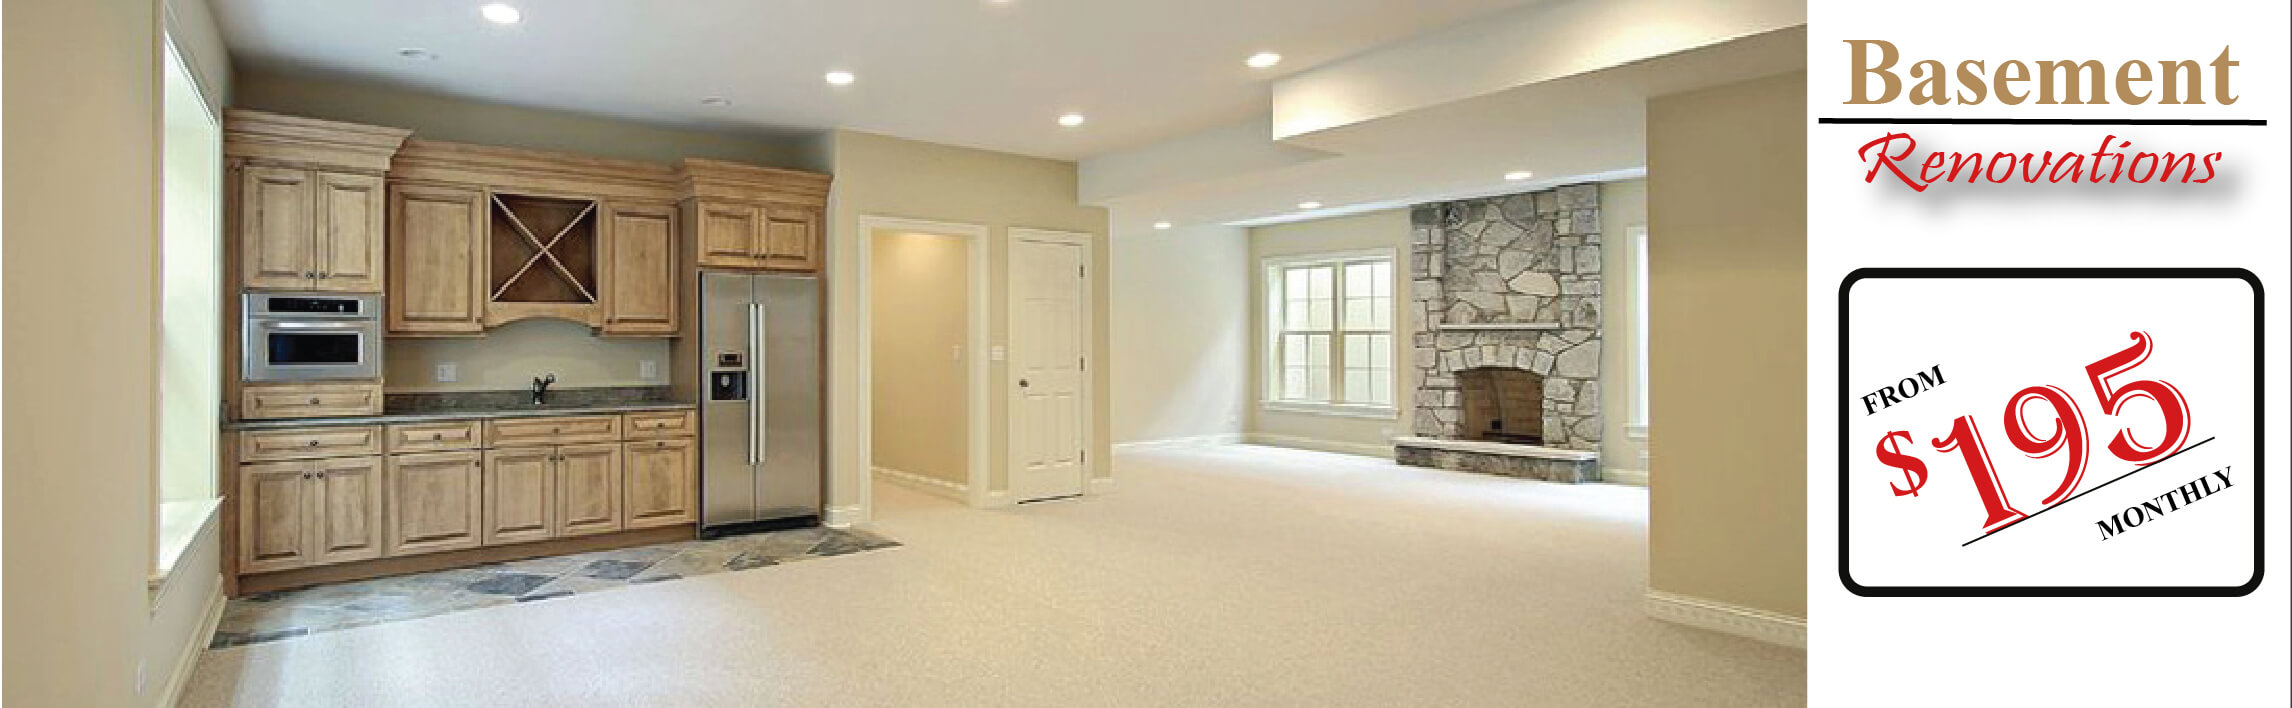 Home Basement Renovations And Contractor In Mississauga, Brampton | Legal  Basement Framing